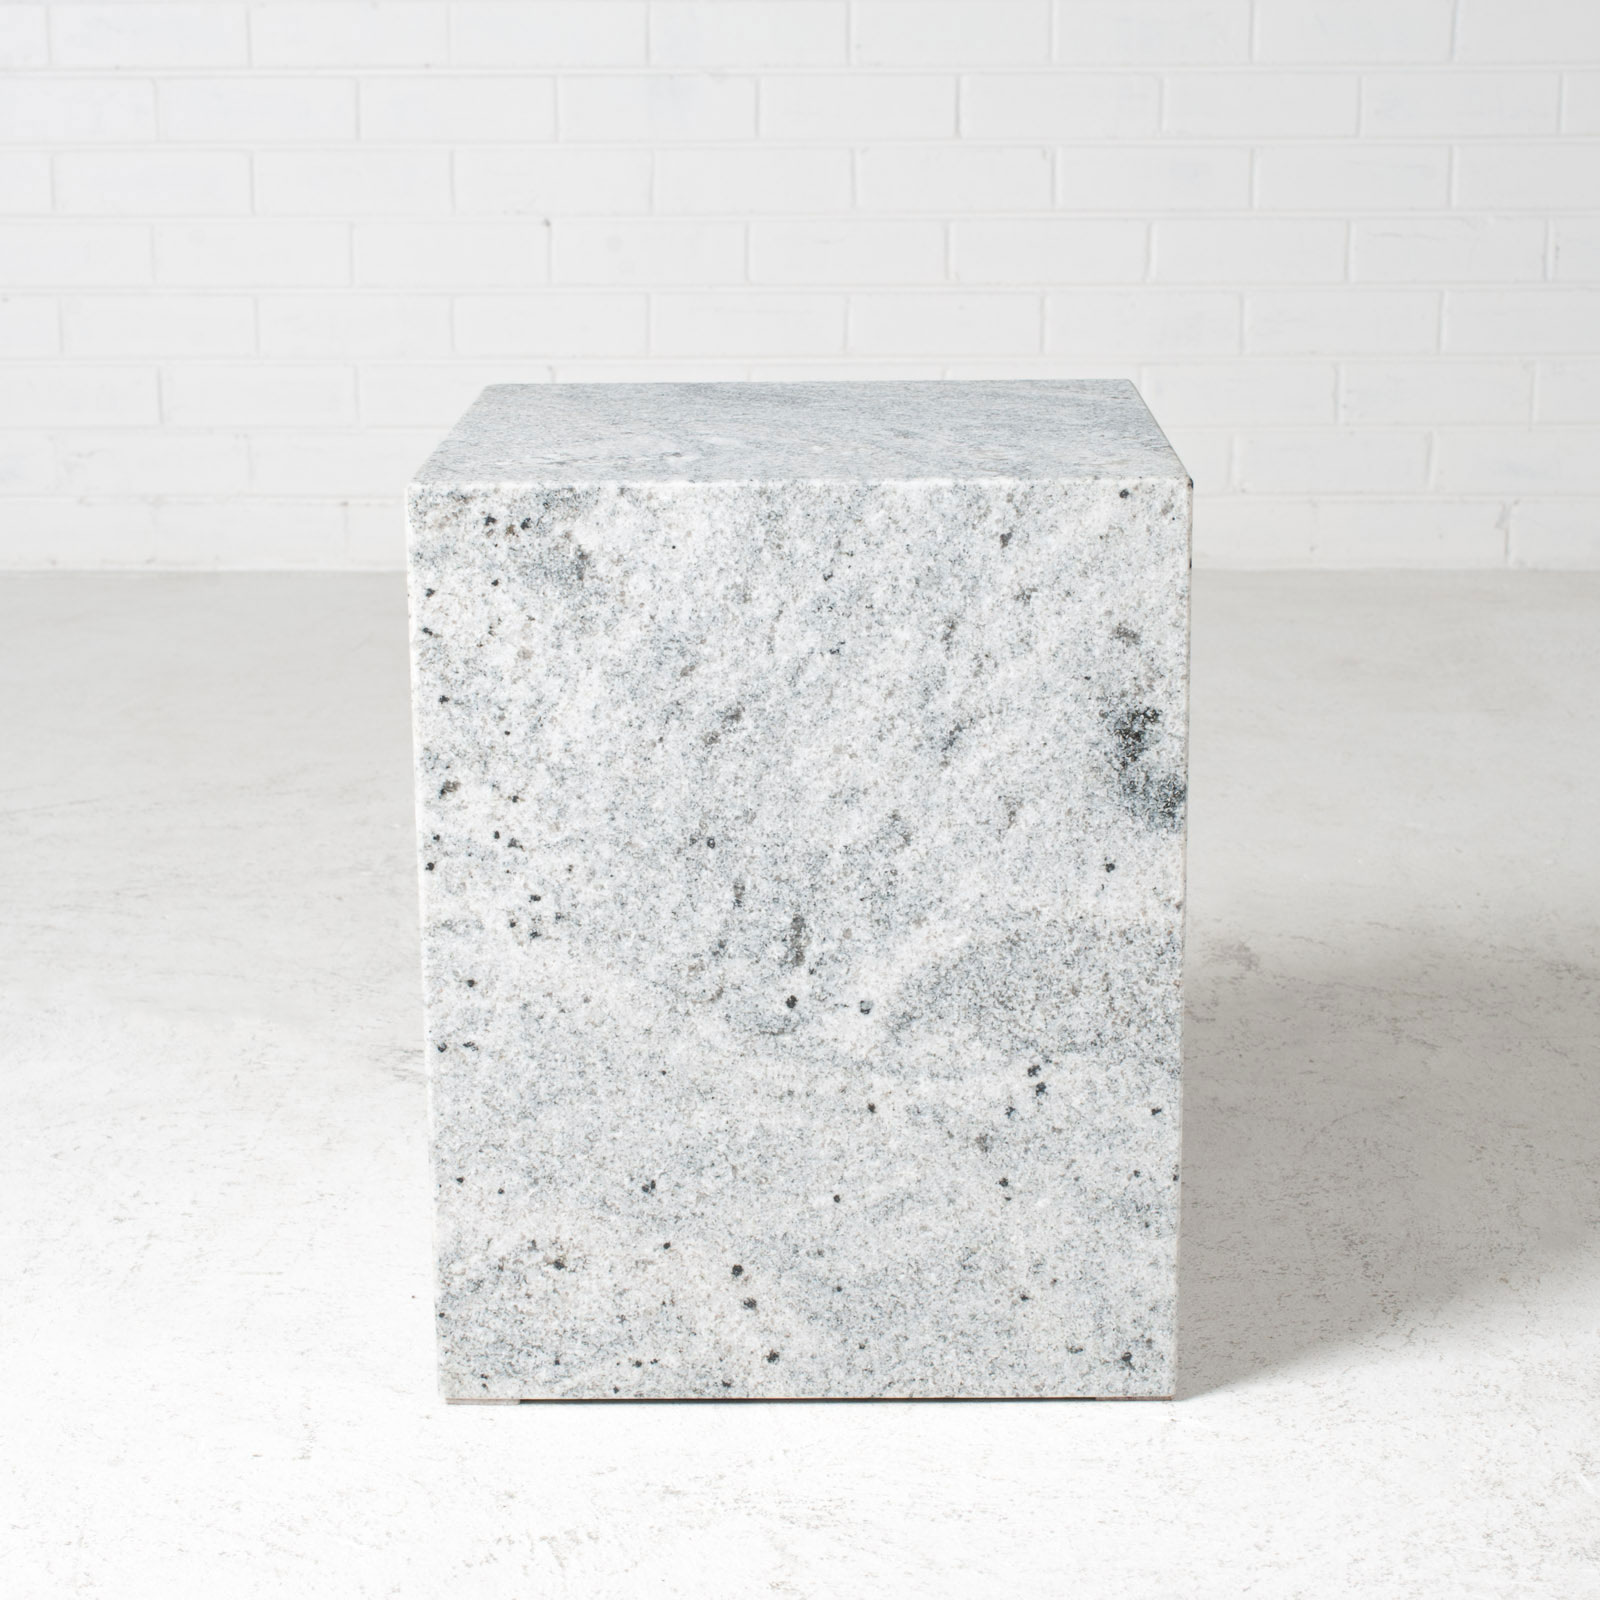 Monolith Side Table By Mt Studio For Modern Times 2018 Australia 02